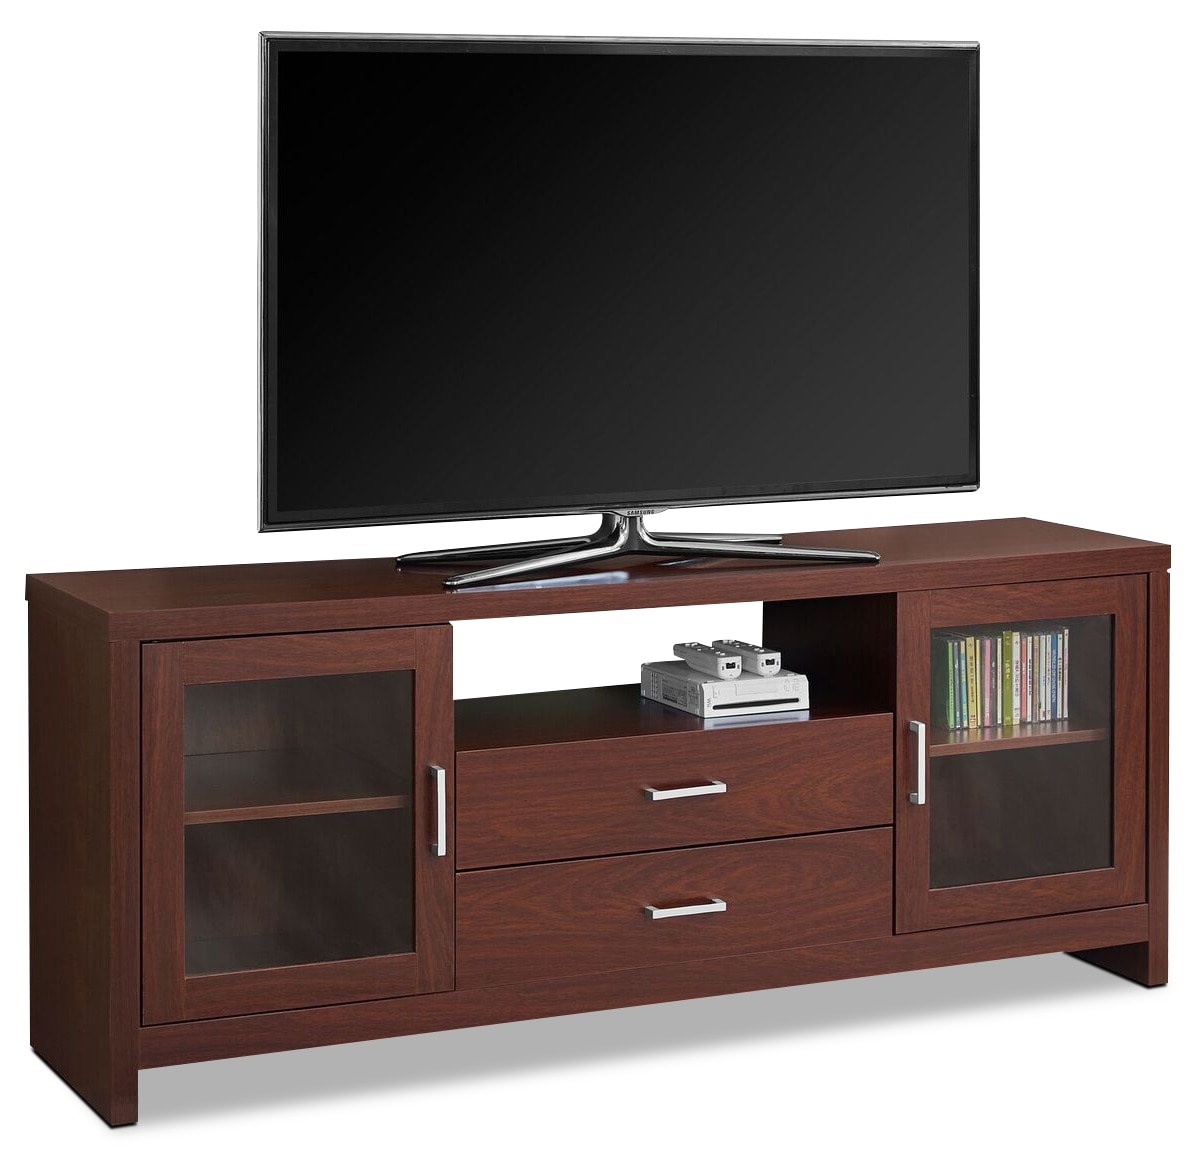 Televisions - Tucker TV Stand - Warm Cherry